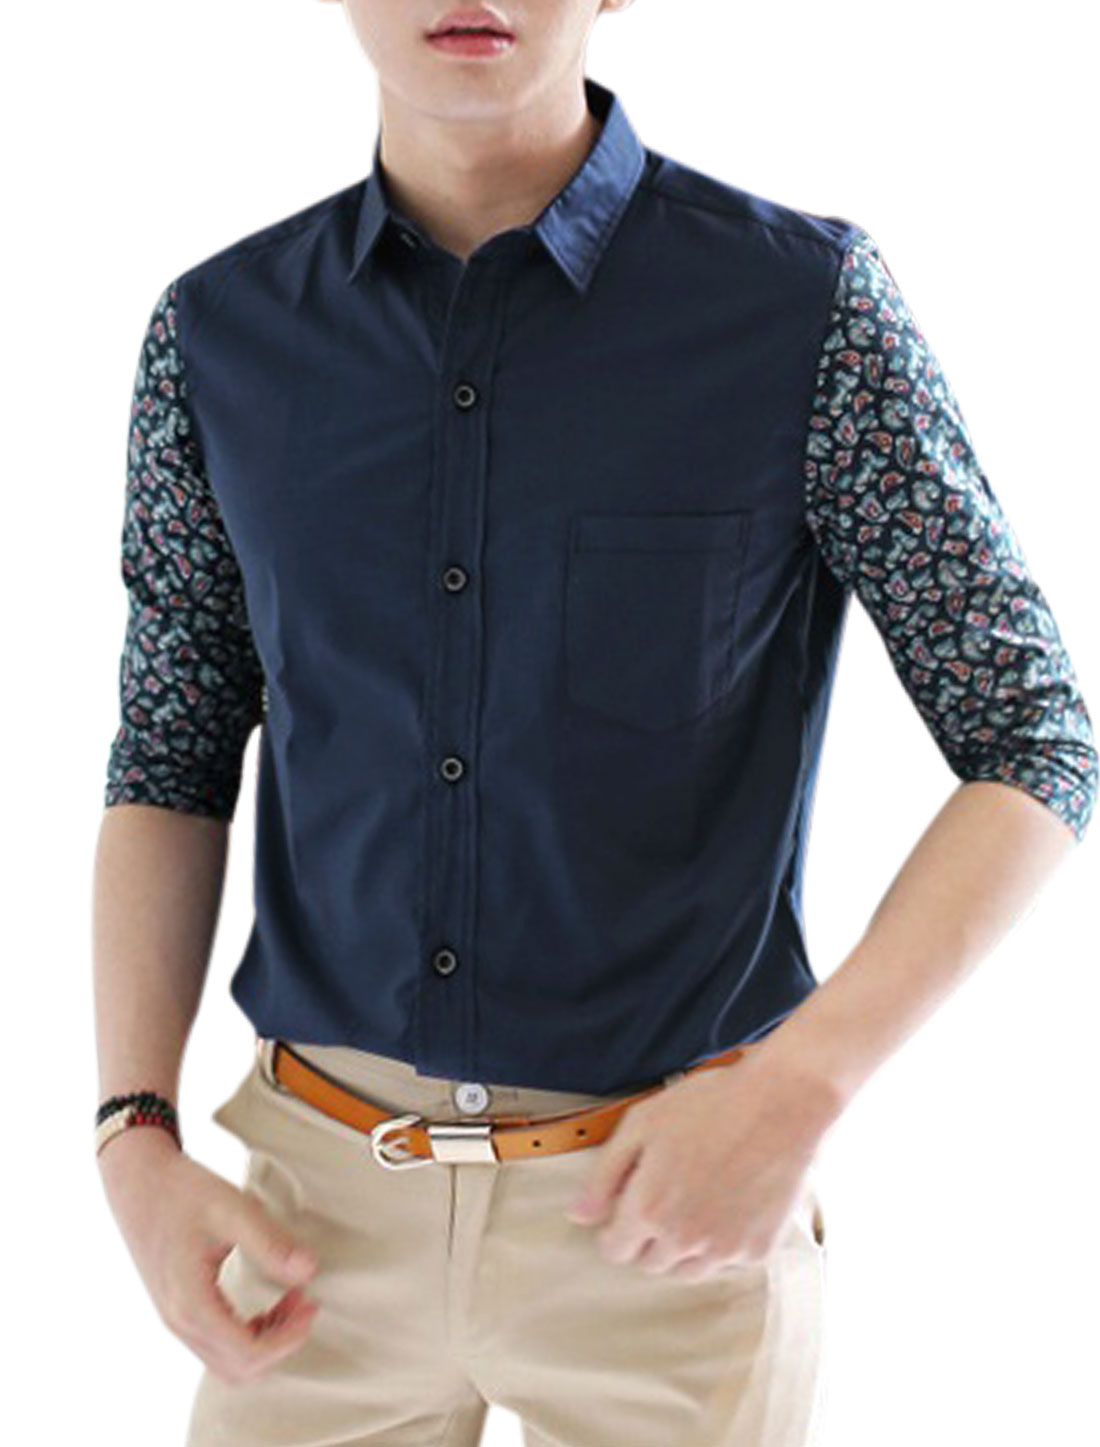 Men Summer 3/4 Sleeve Breast Pocket Splicing Paisleys Top Shirt Navy Blue M